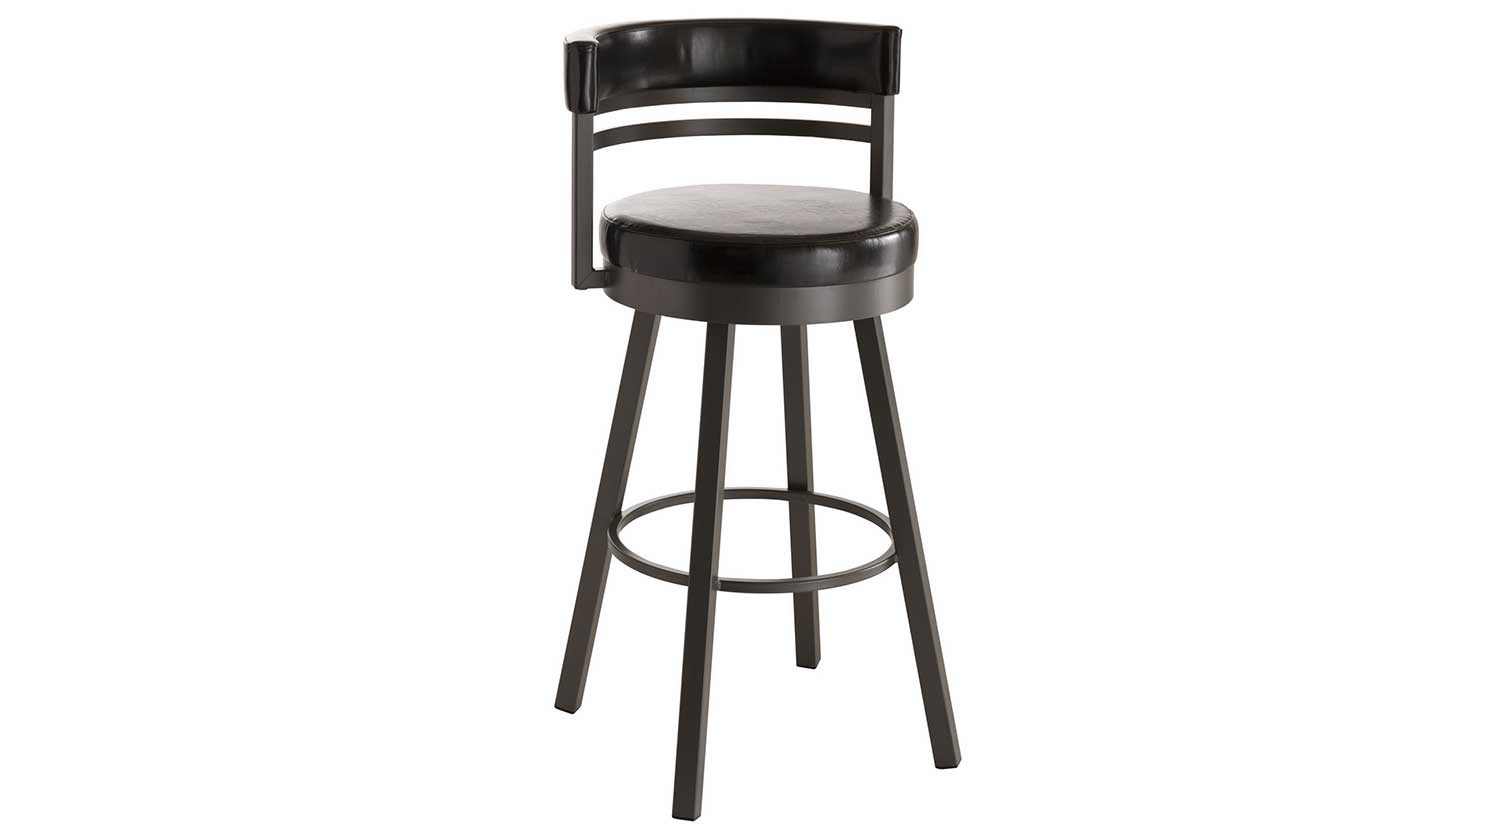 Circle Furniture Ronny Counter And Bar Stool